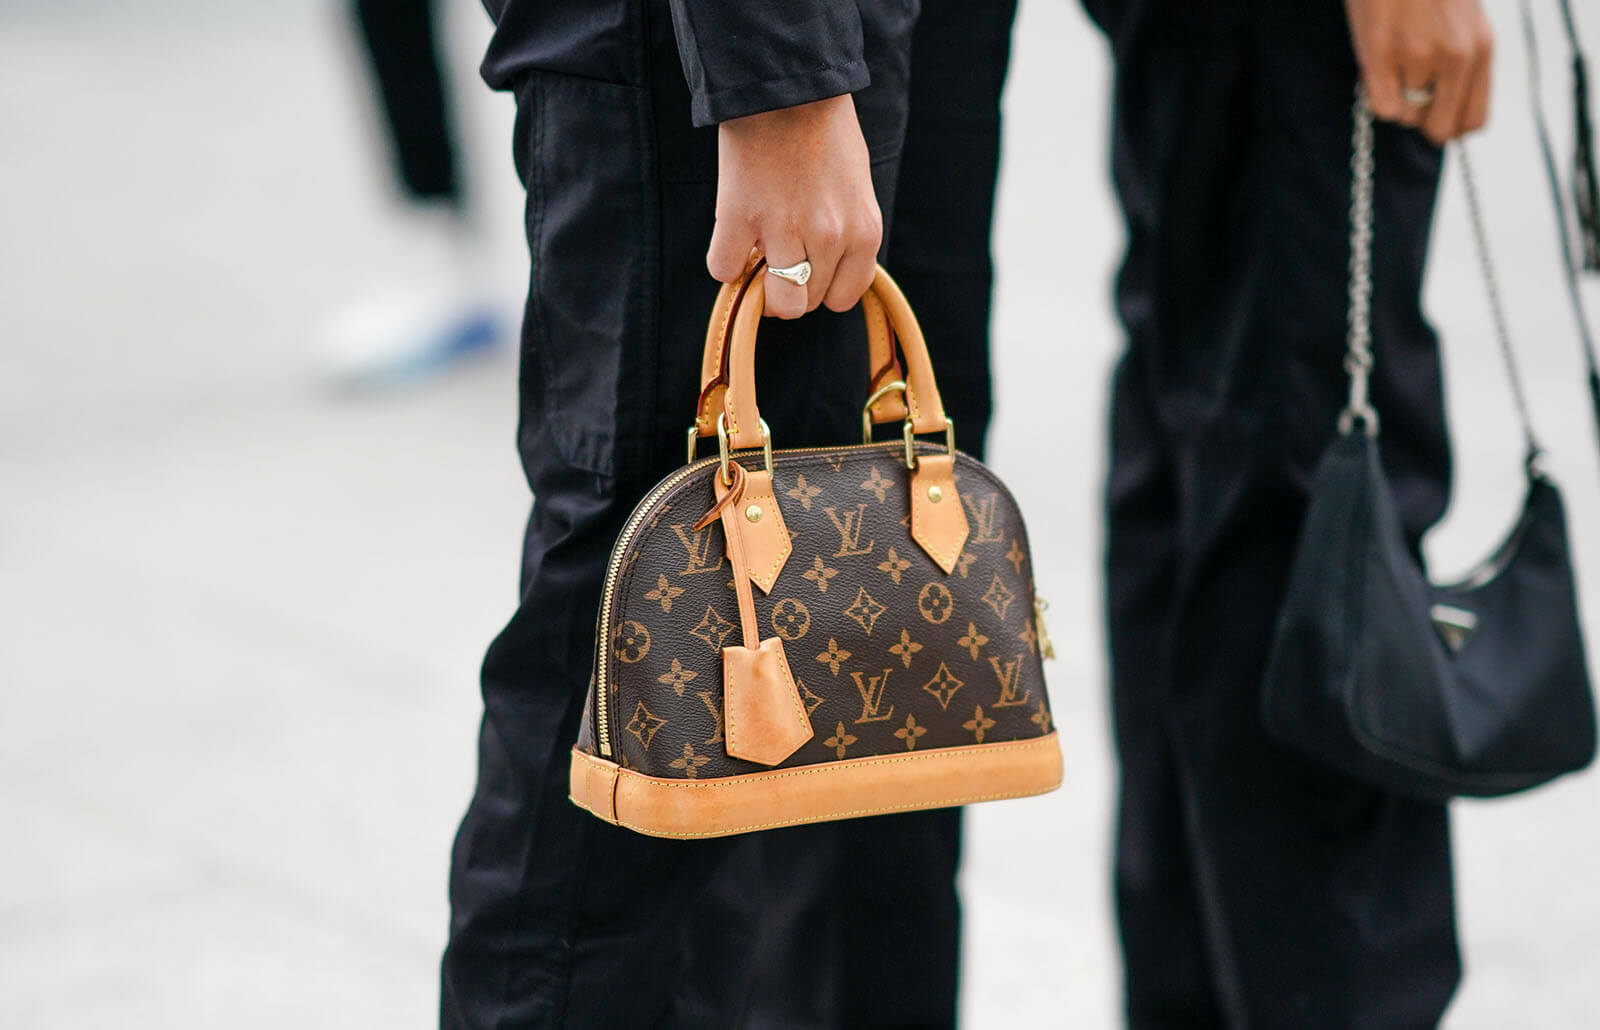 How Much Does a Louis Vuitton Purse Cost An Easy Guide   LoveToKnow